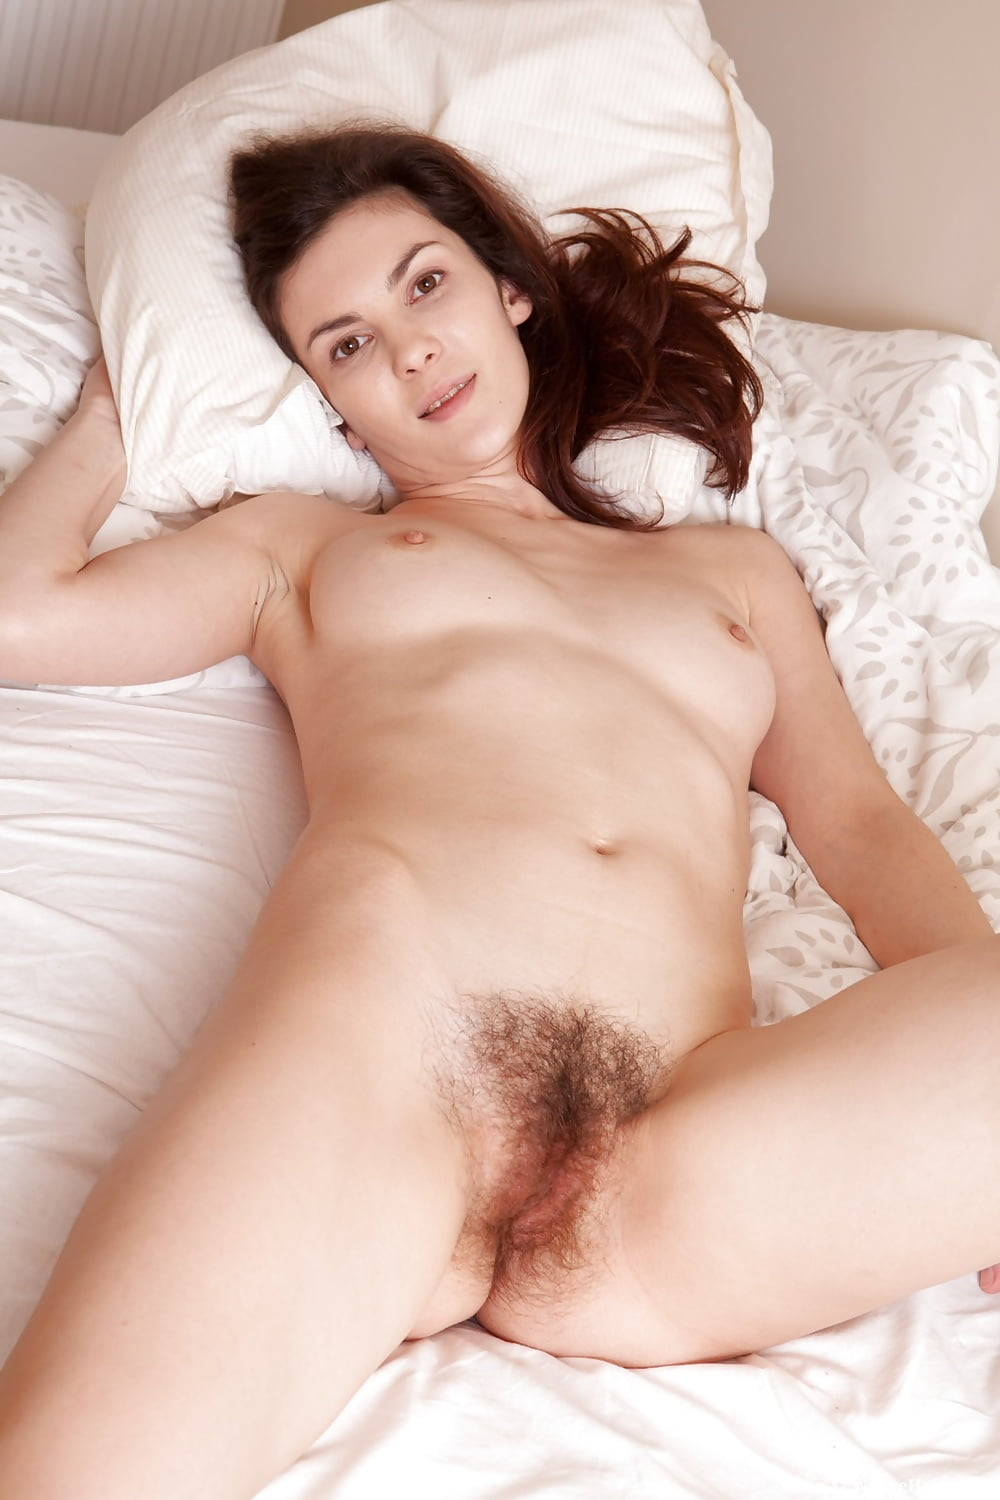 Images hairy nude women laying down mature porn stars